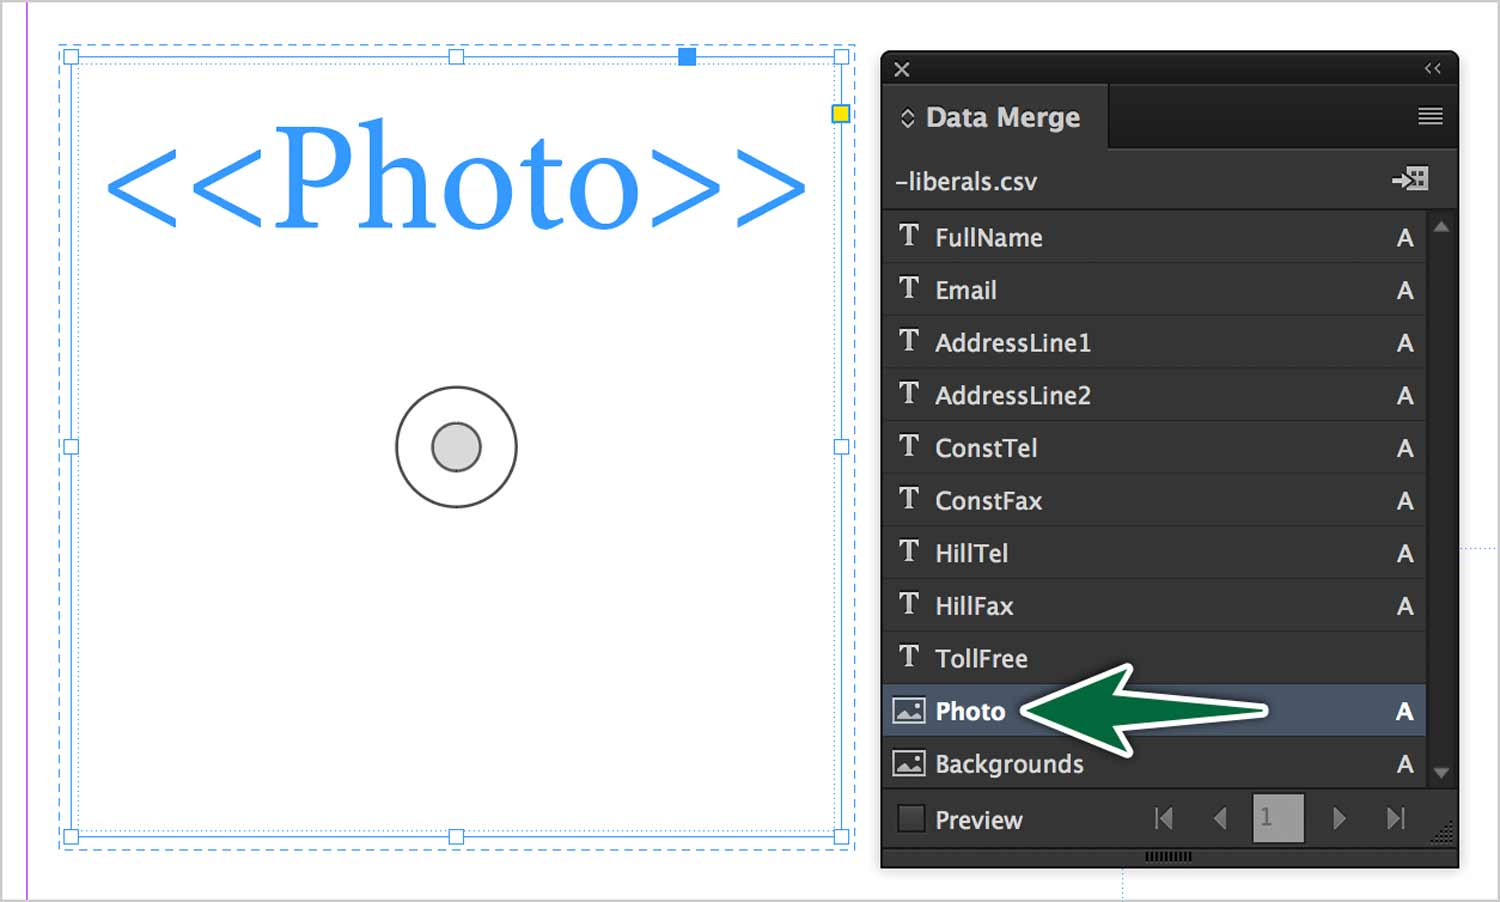 indesign-data-merge-image-frame-panel